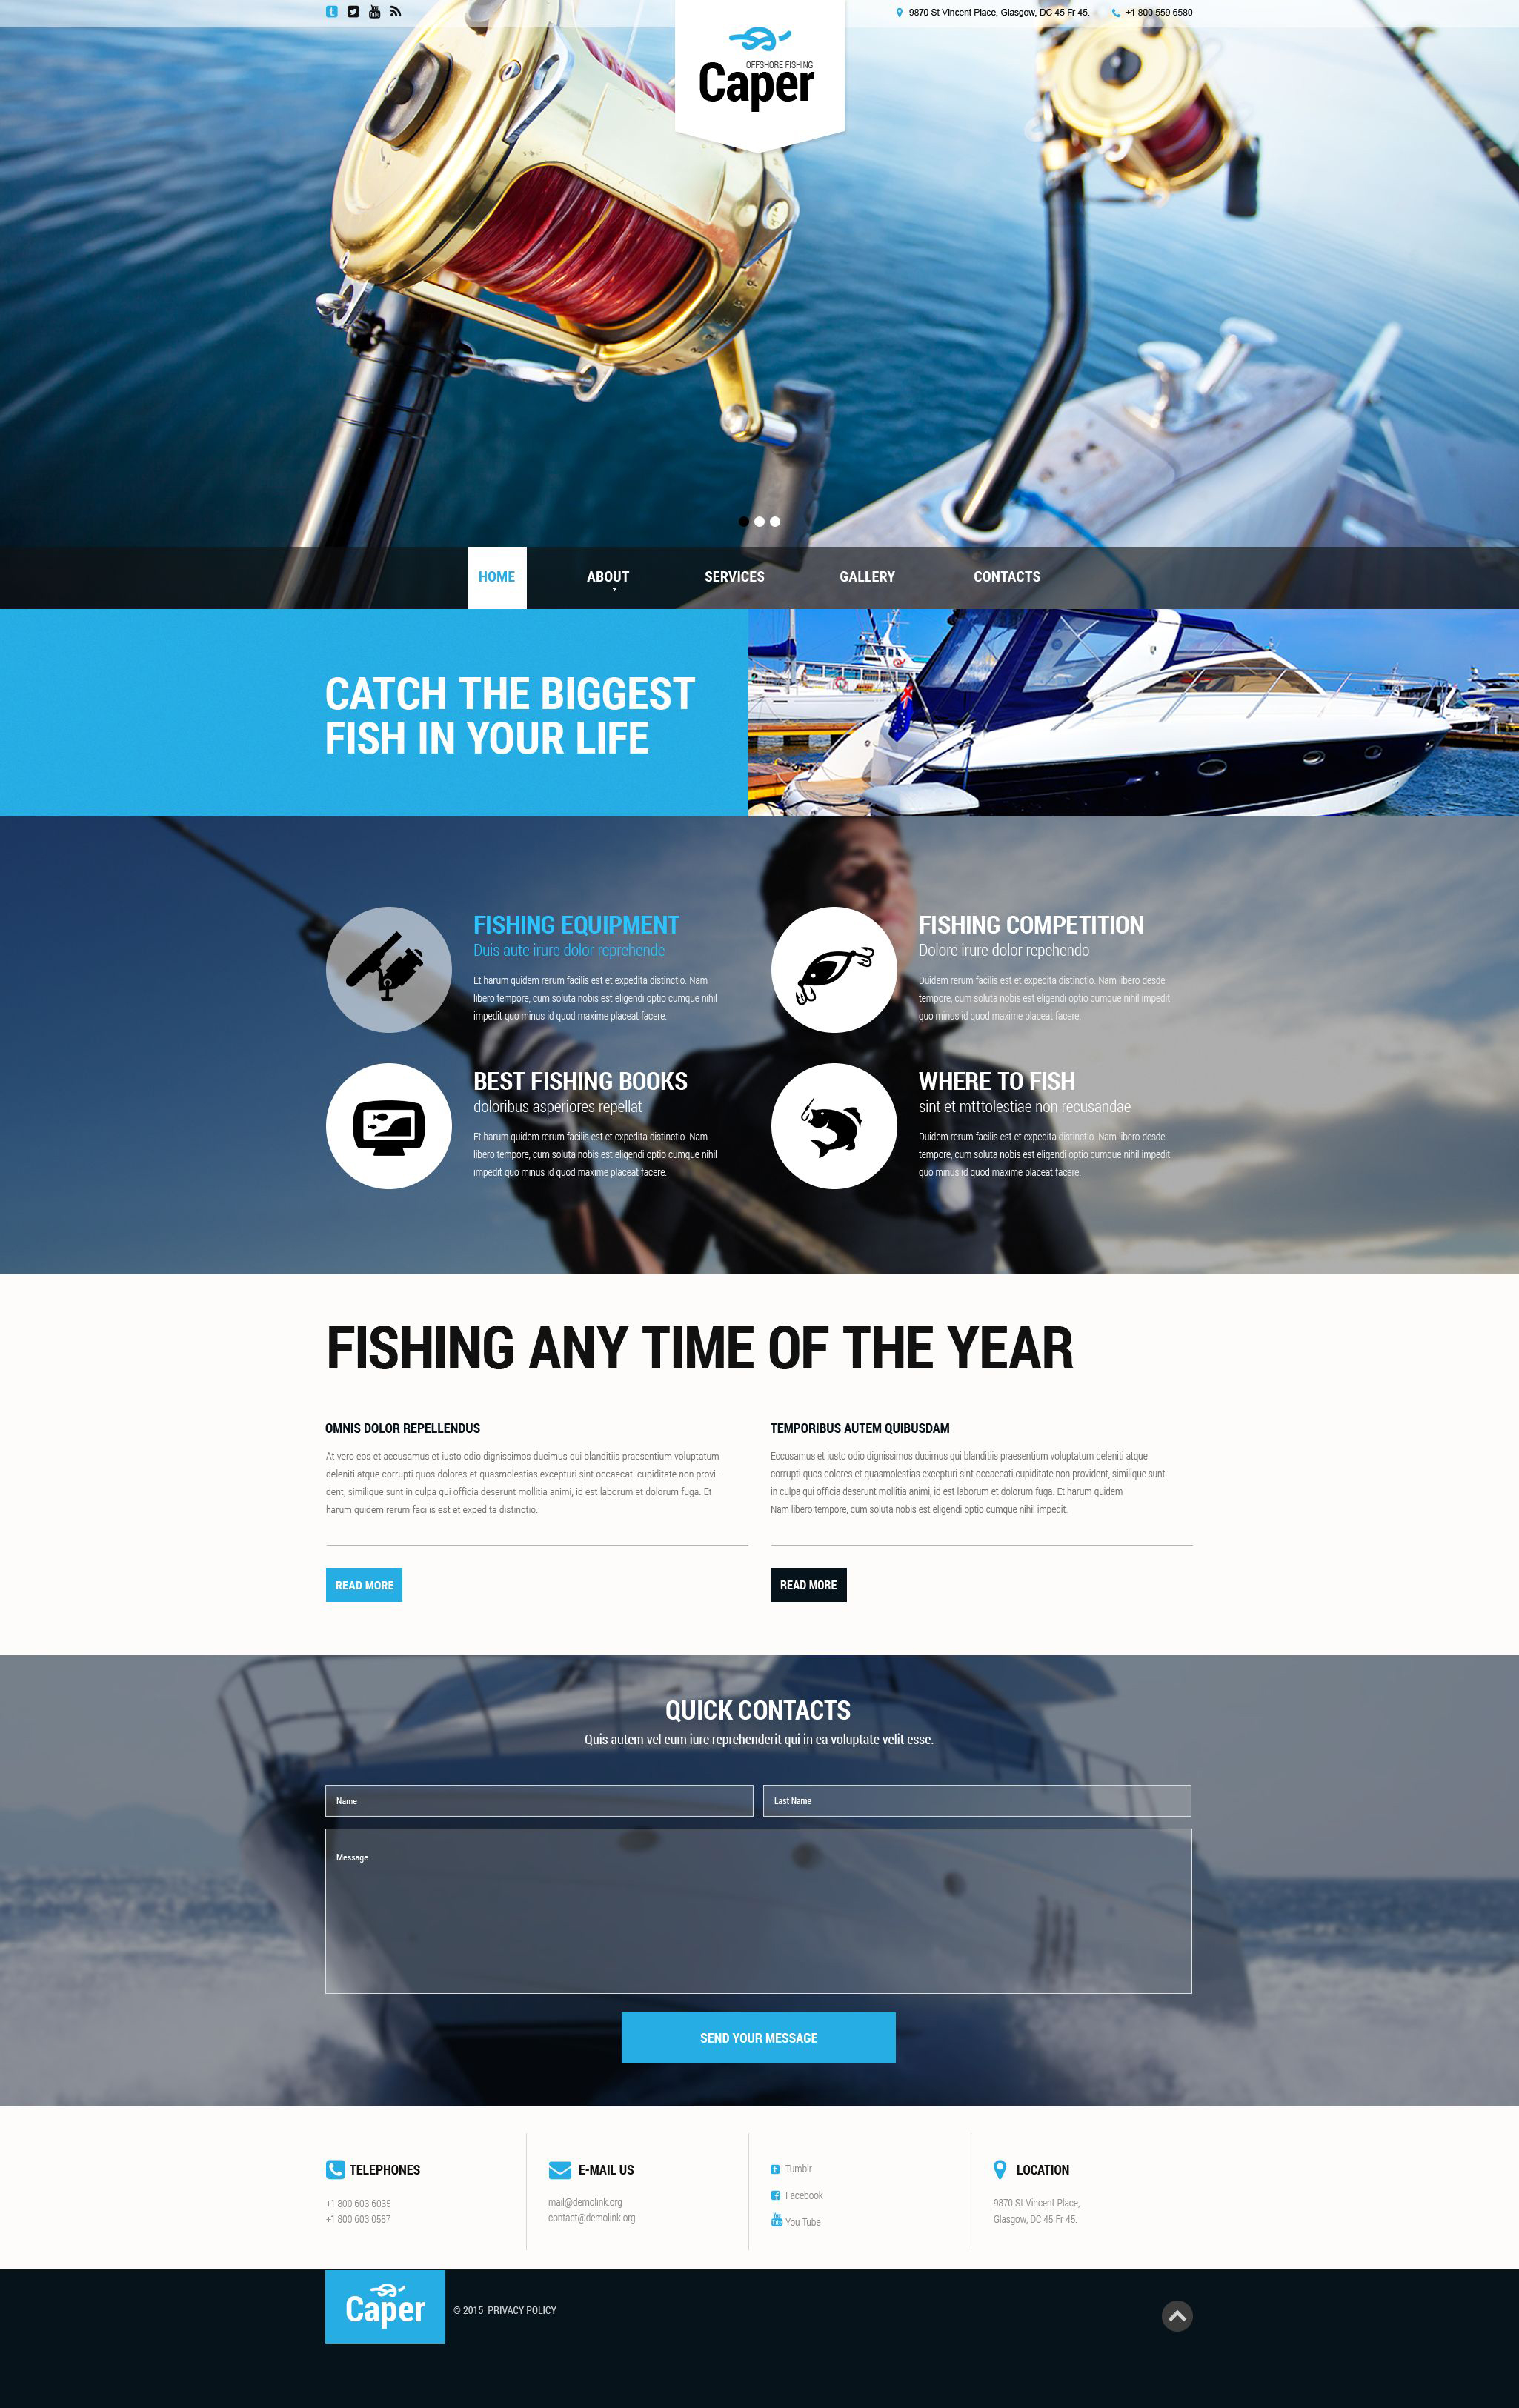 The Caper Offshore Responsive Javascript Animated Design 53975, one of the best website templates of its kind (sport, most popular), also known as caper offshore website template, fishing club website template, sport website template, fish website template, line website template, site website template, fisherman website template, boat website template, rod website template, catch website template, advice website template, fun website template, river website template, lake and related with caper offshore, fishing club, sport, fish, line, site, fisherman, boat, rod, catch, advice, fun, river, lake, etc.